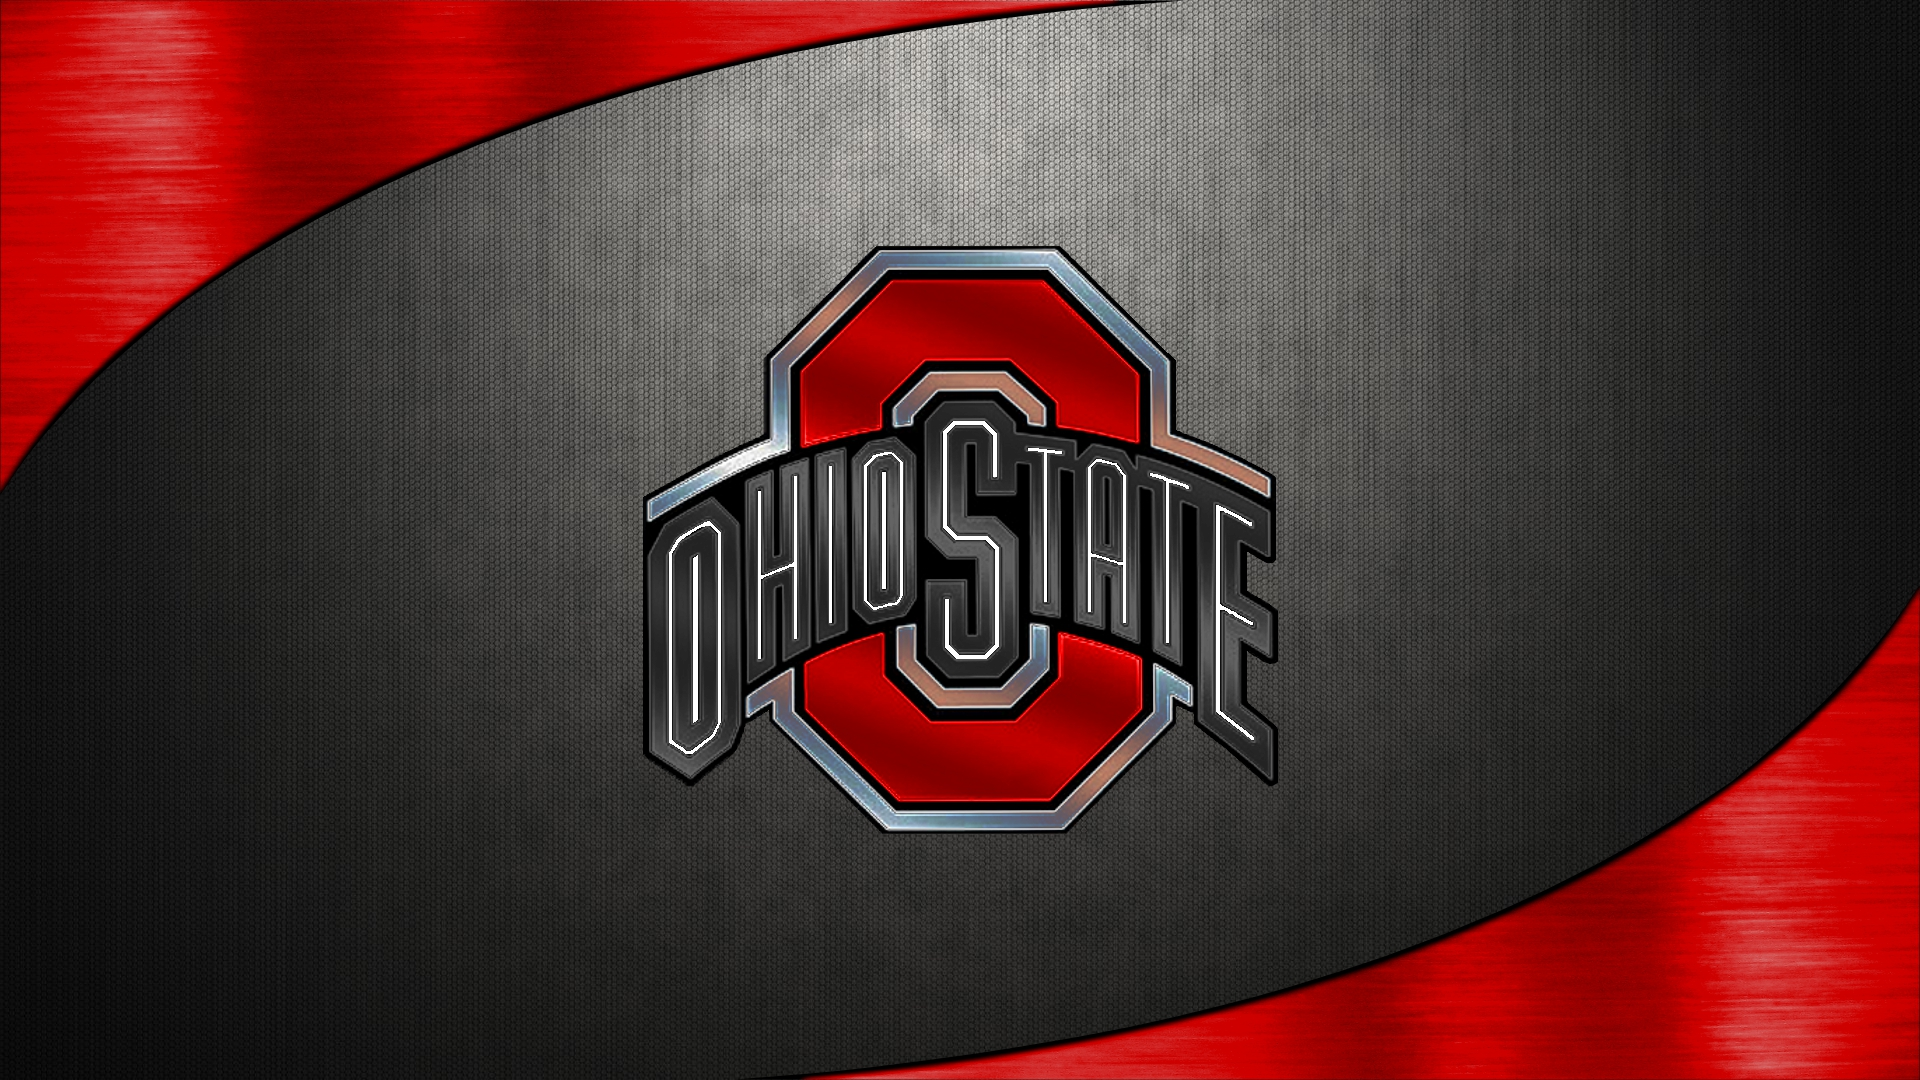 Ohio State Football Wallpaper: Ohio State Football Backgrounds